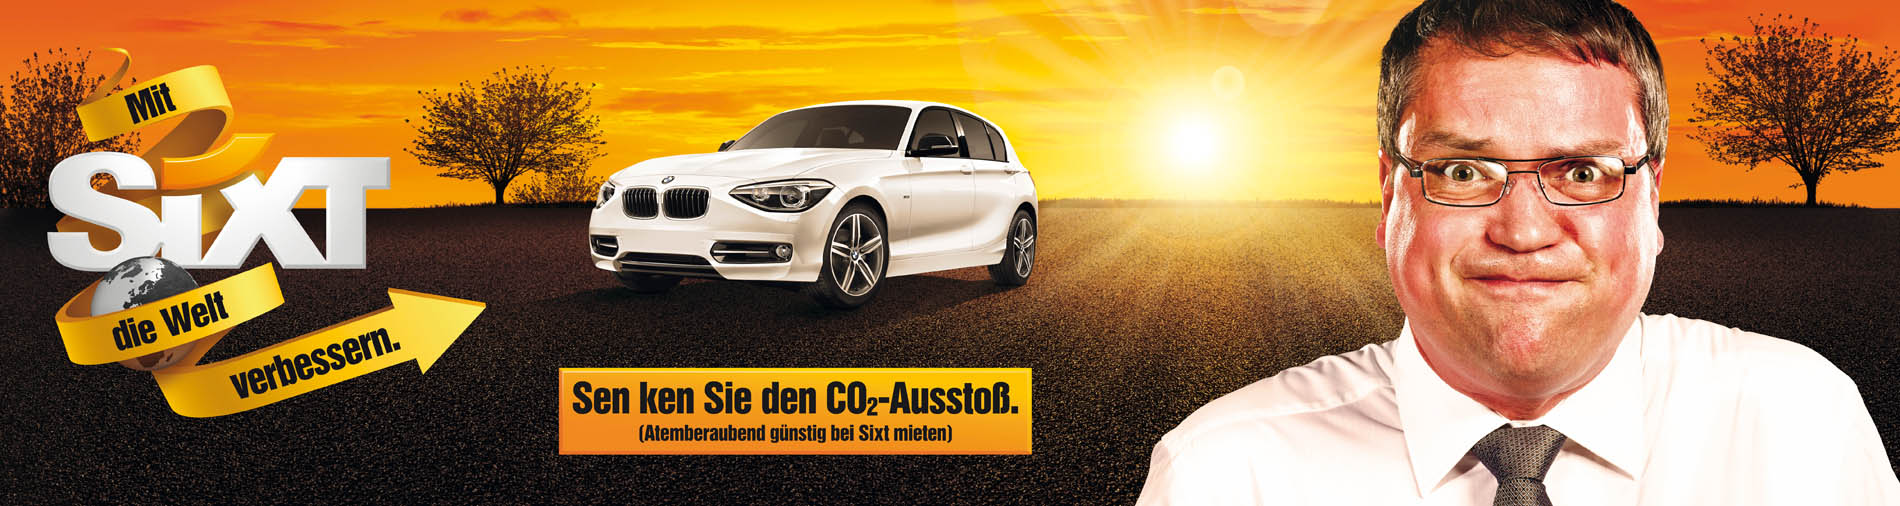 SIXT Airport Marketing, Full panel